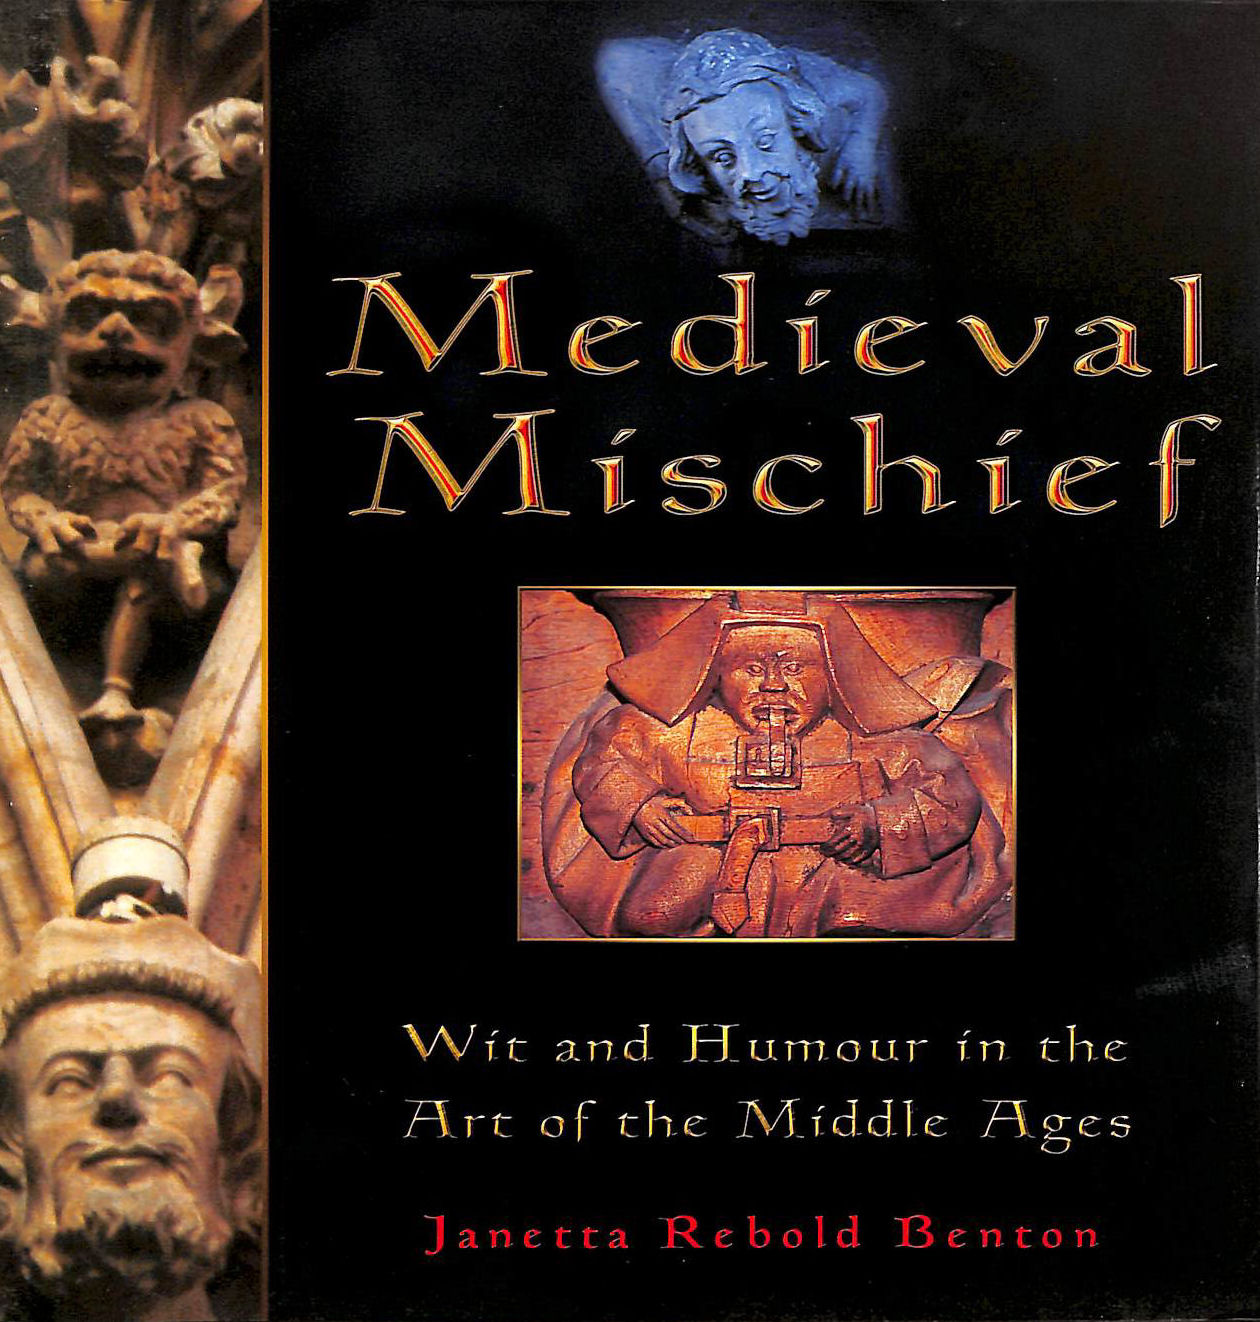 Image for Medieval Mischief, Wit and Humour in the Art of the Middle Ages